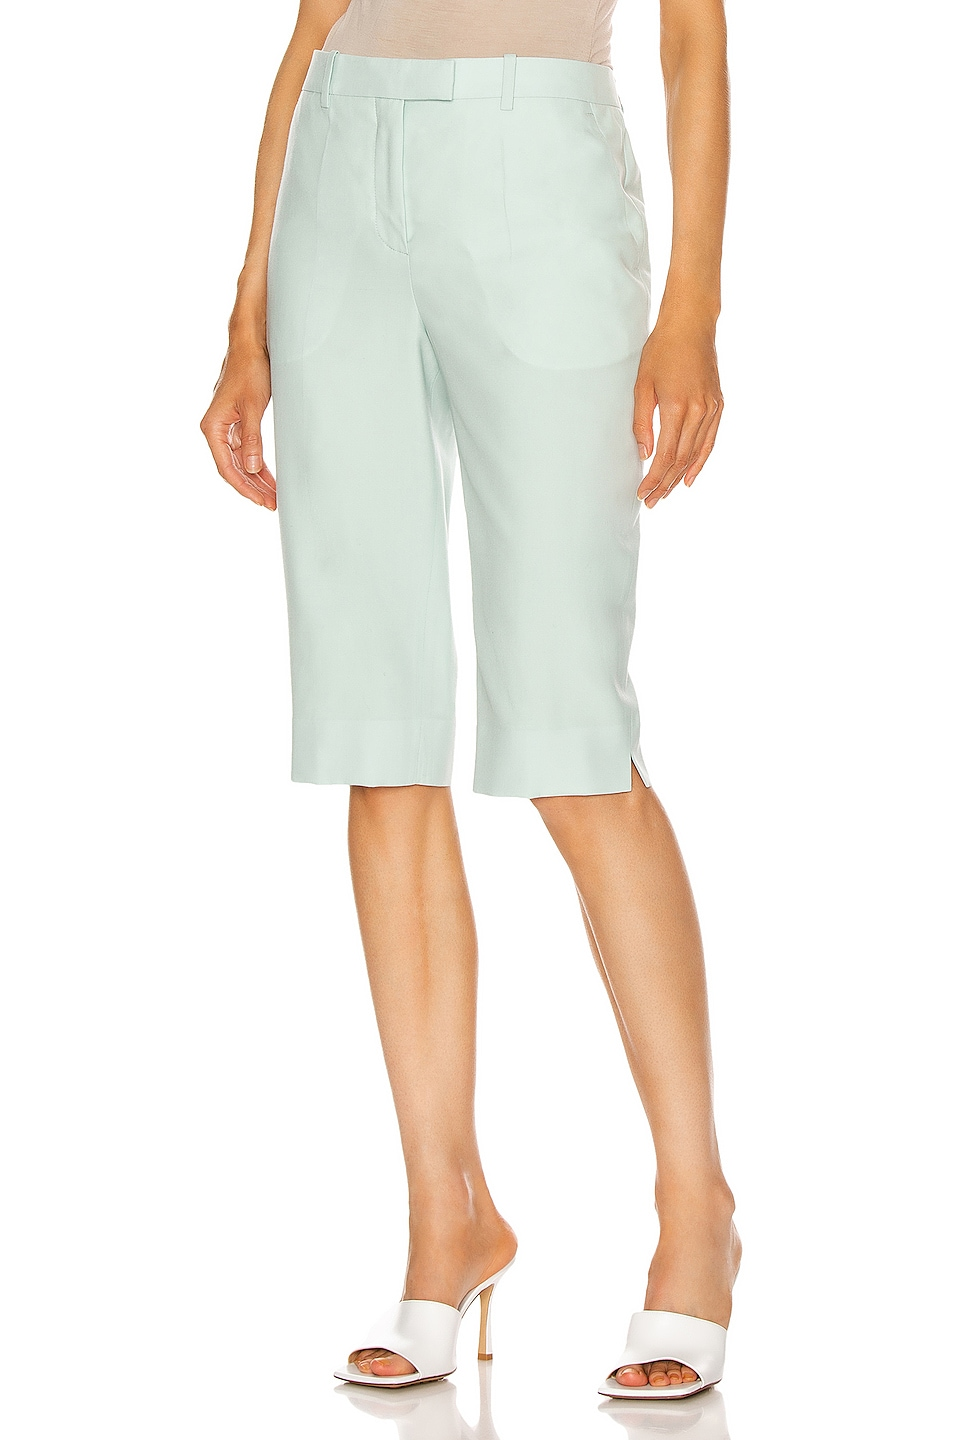 Image 1 of Givenchy Straight Fit Bermuda Short in Aqua Green